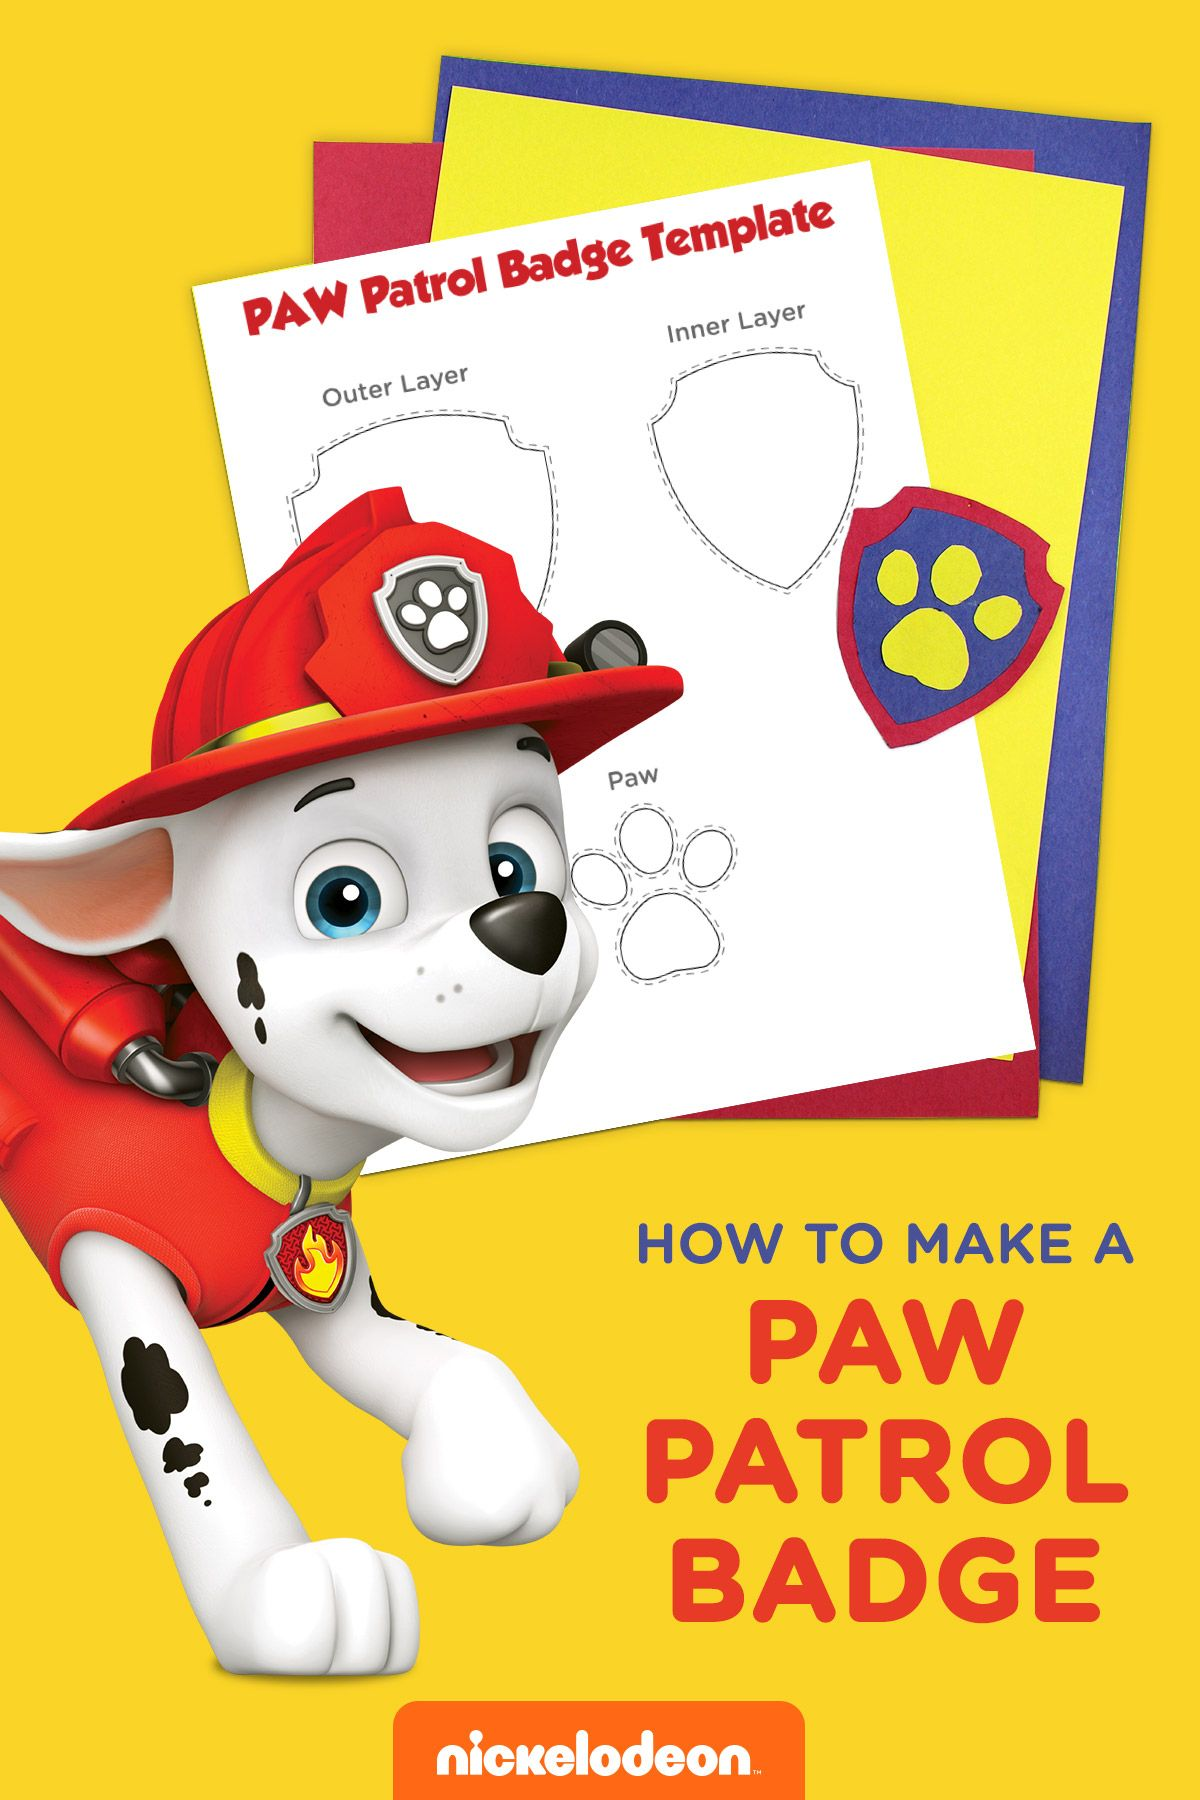 It's just a photo of Revered Paw Patrol Badge Template Printable